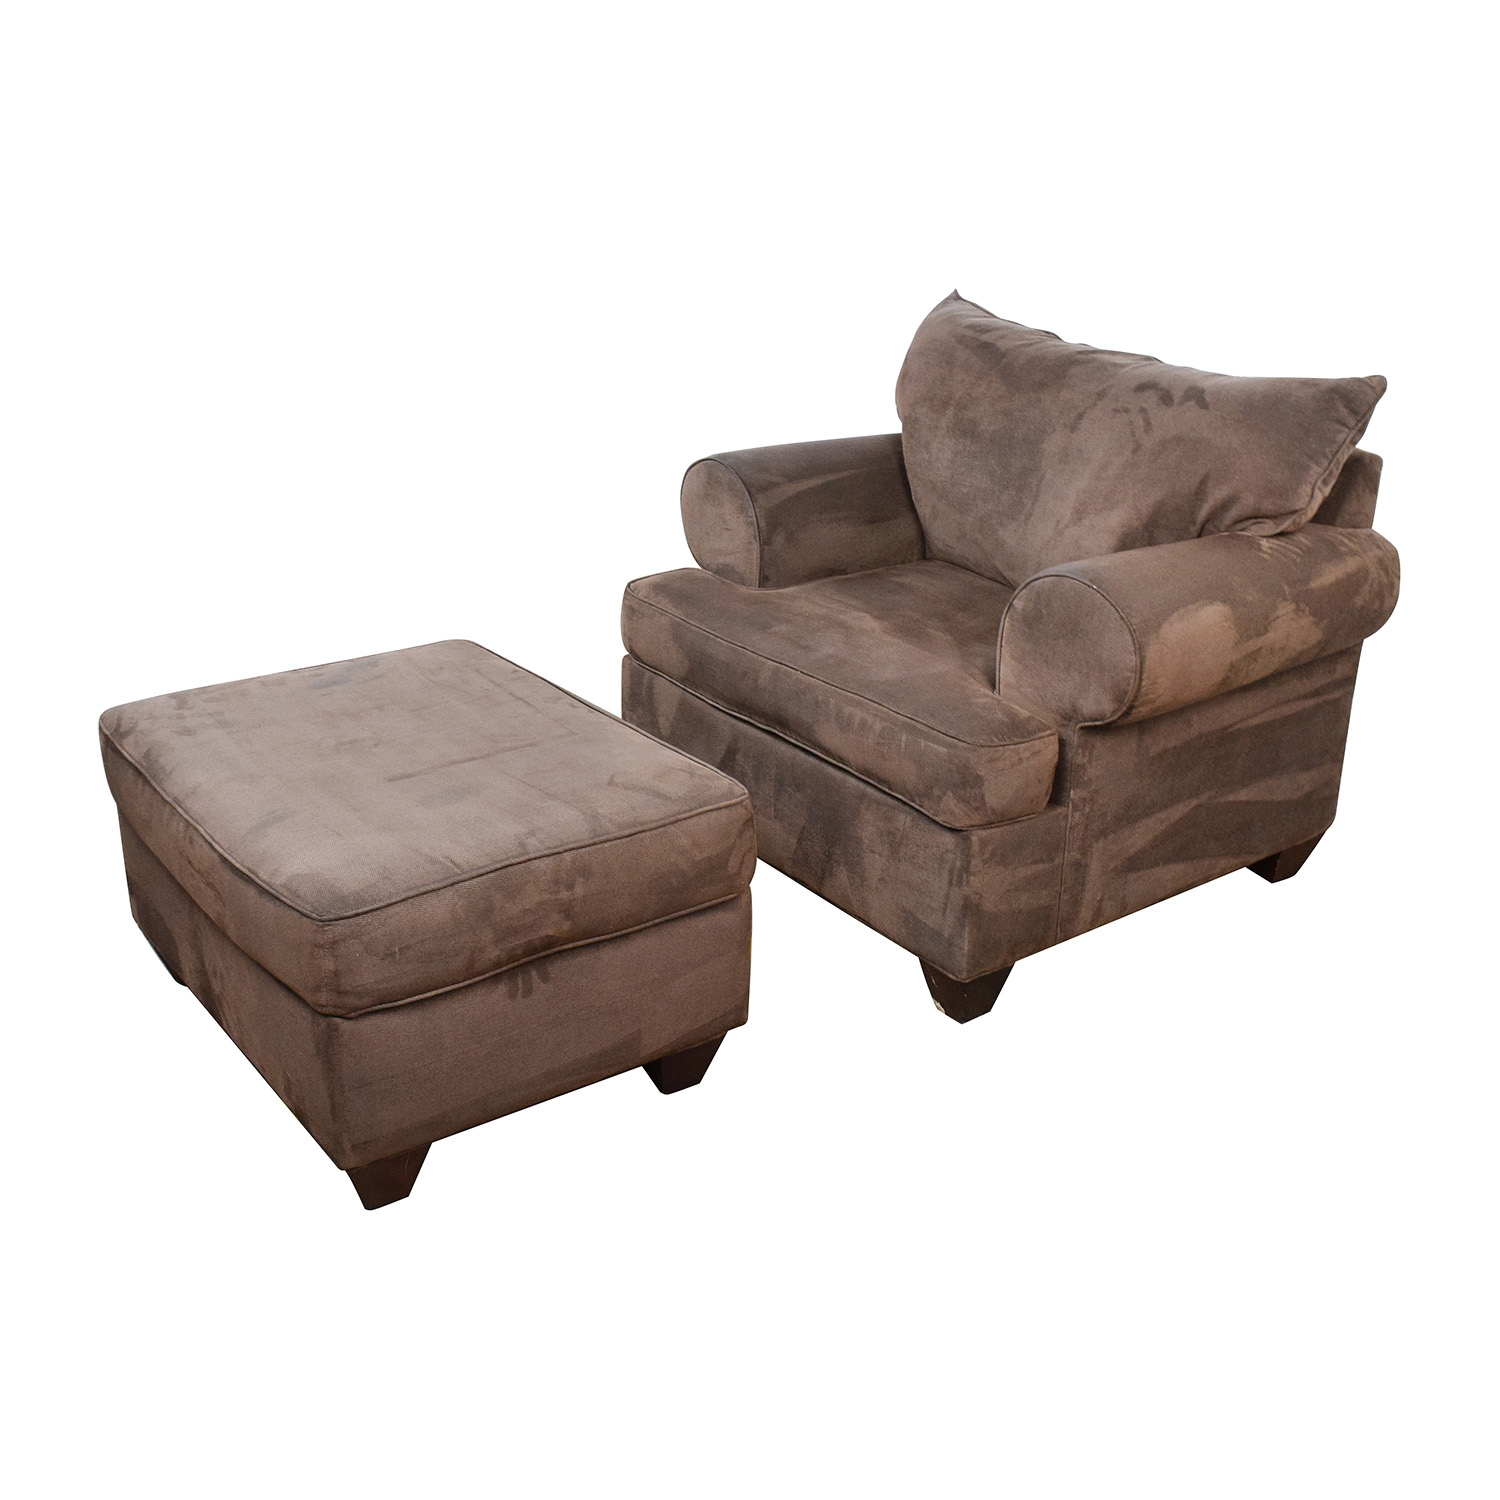 67 Off Dark Brown Sofa Chair With Ottoman Chairs Within Brown Sofa Chairs (Image 6 of 15)